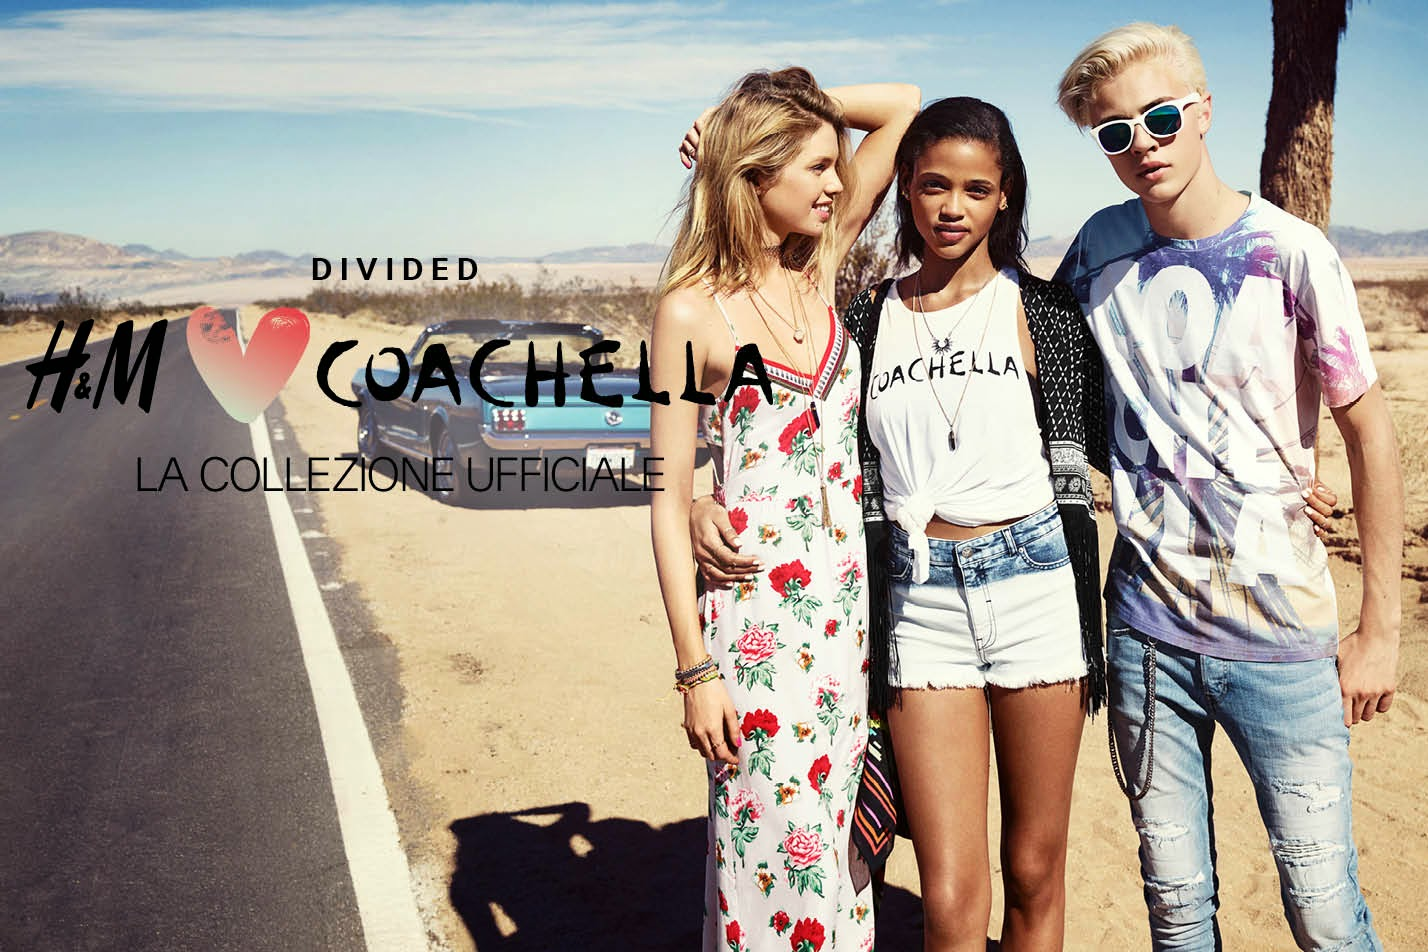 http://www.syriouslyinfashion.com/2015/04/h-coachella-collection.html